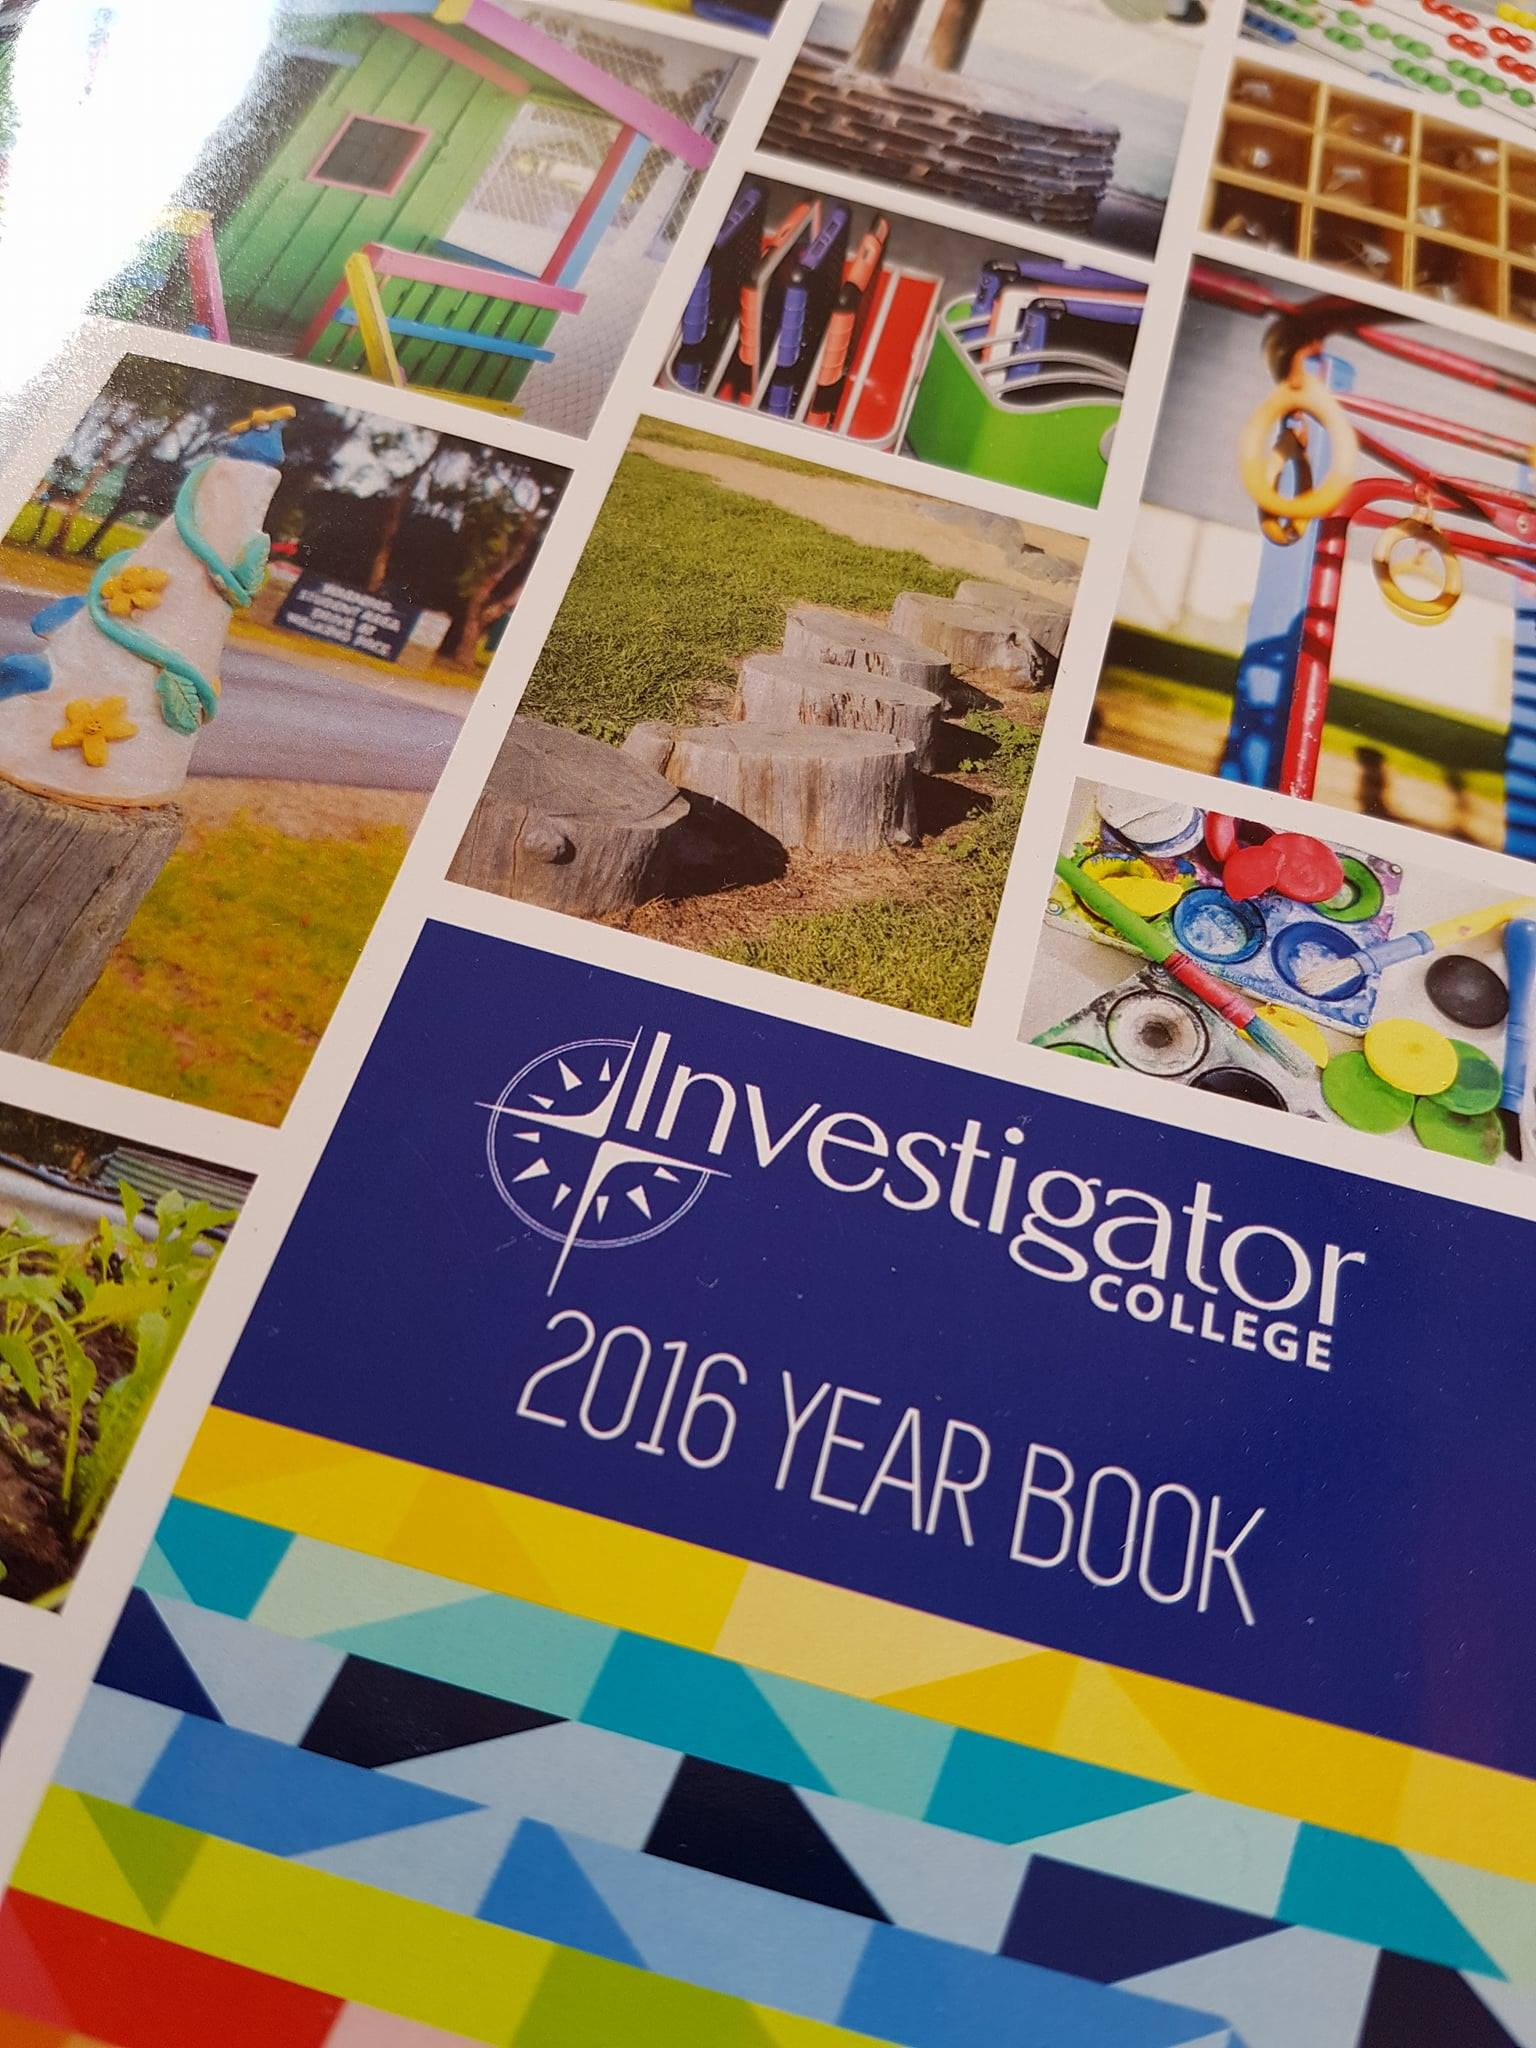 2016 Year Books Have Arrived!